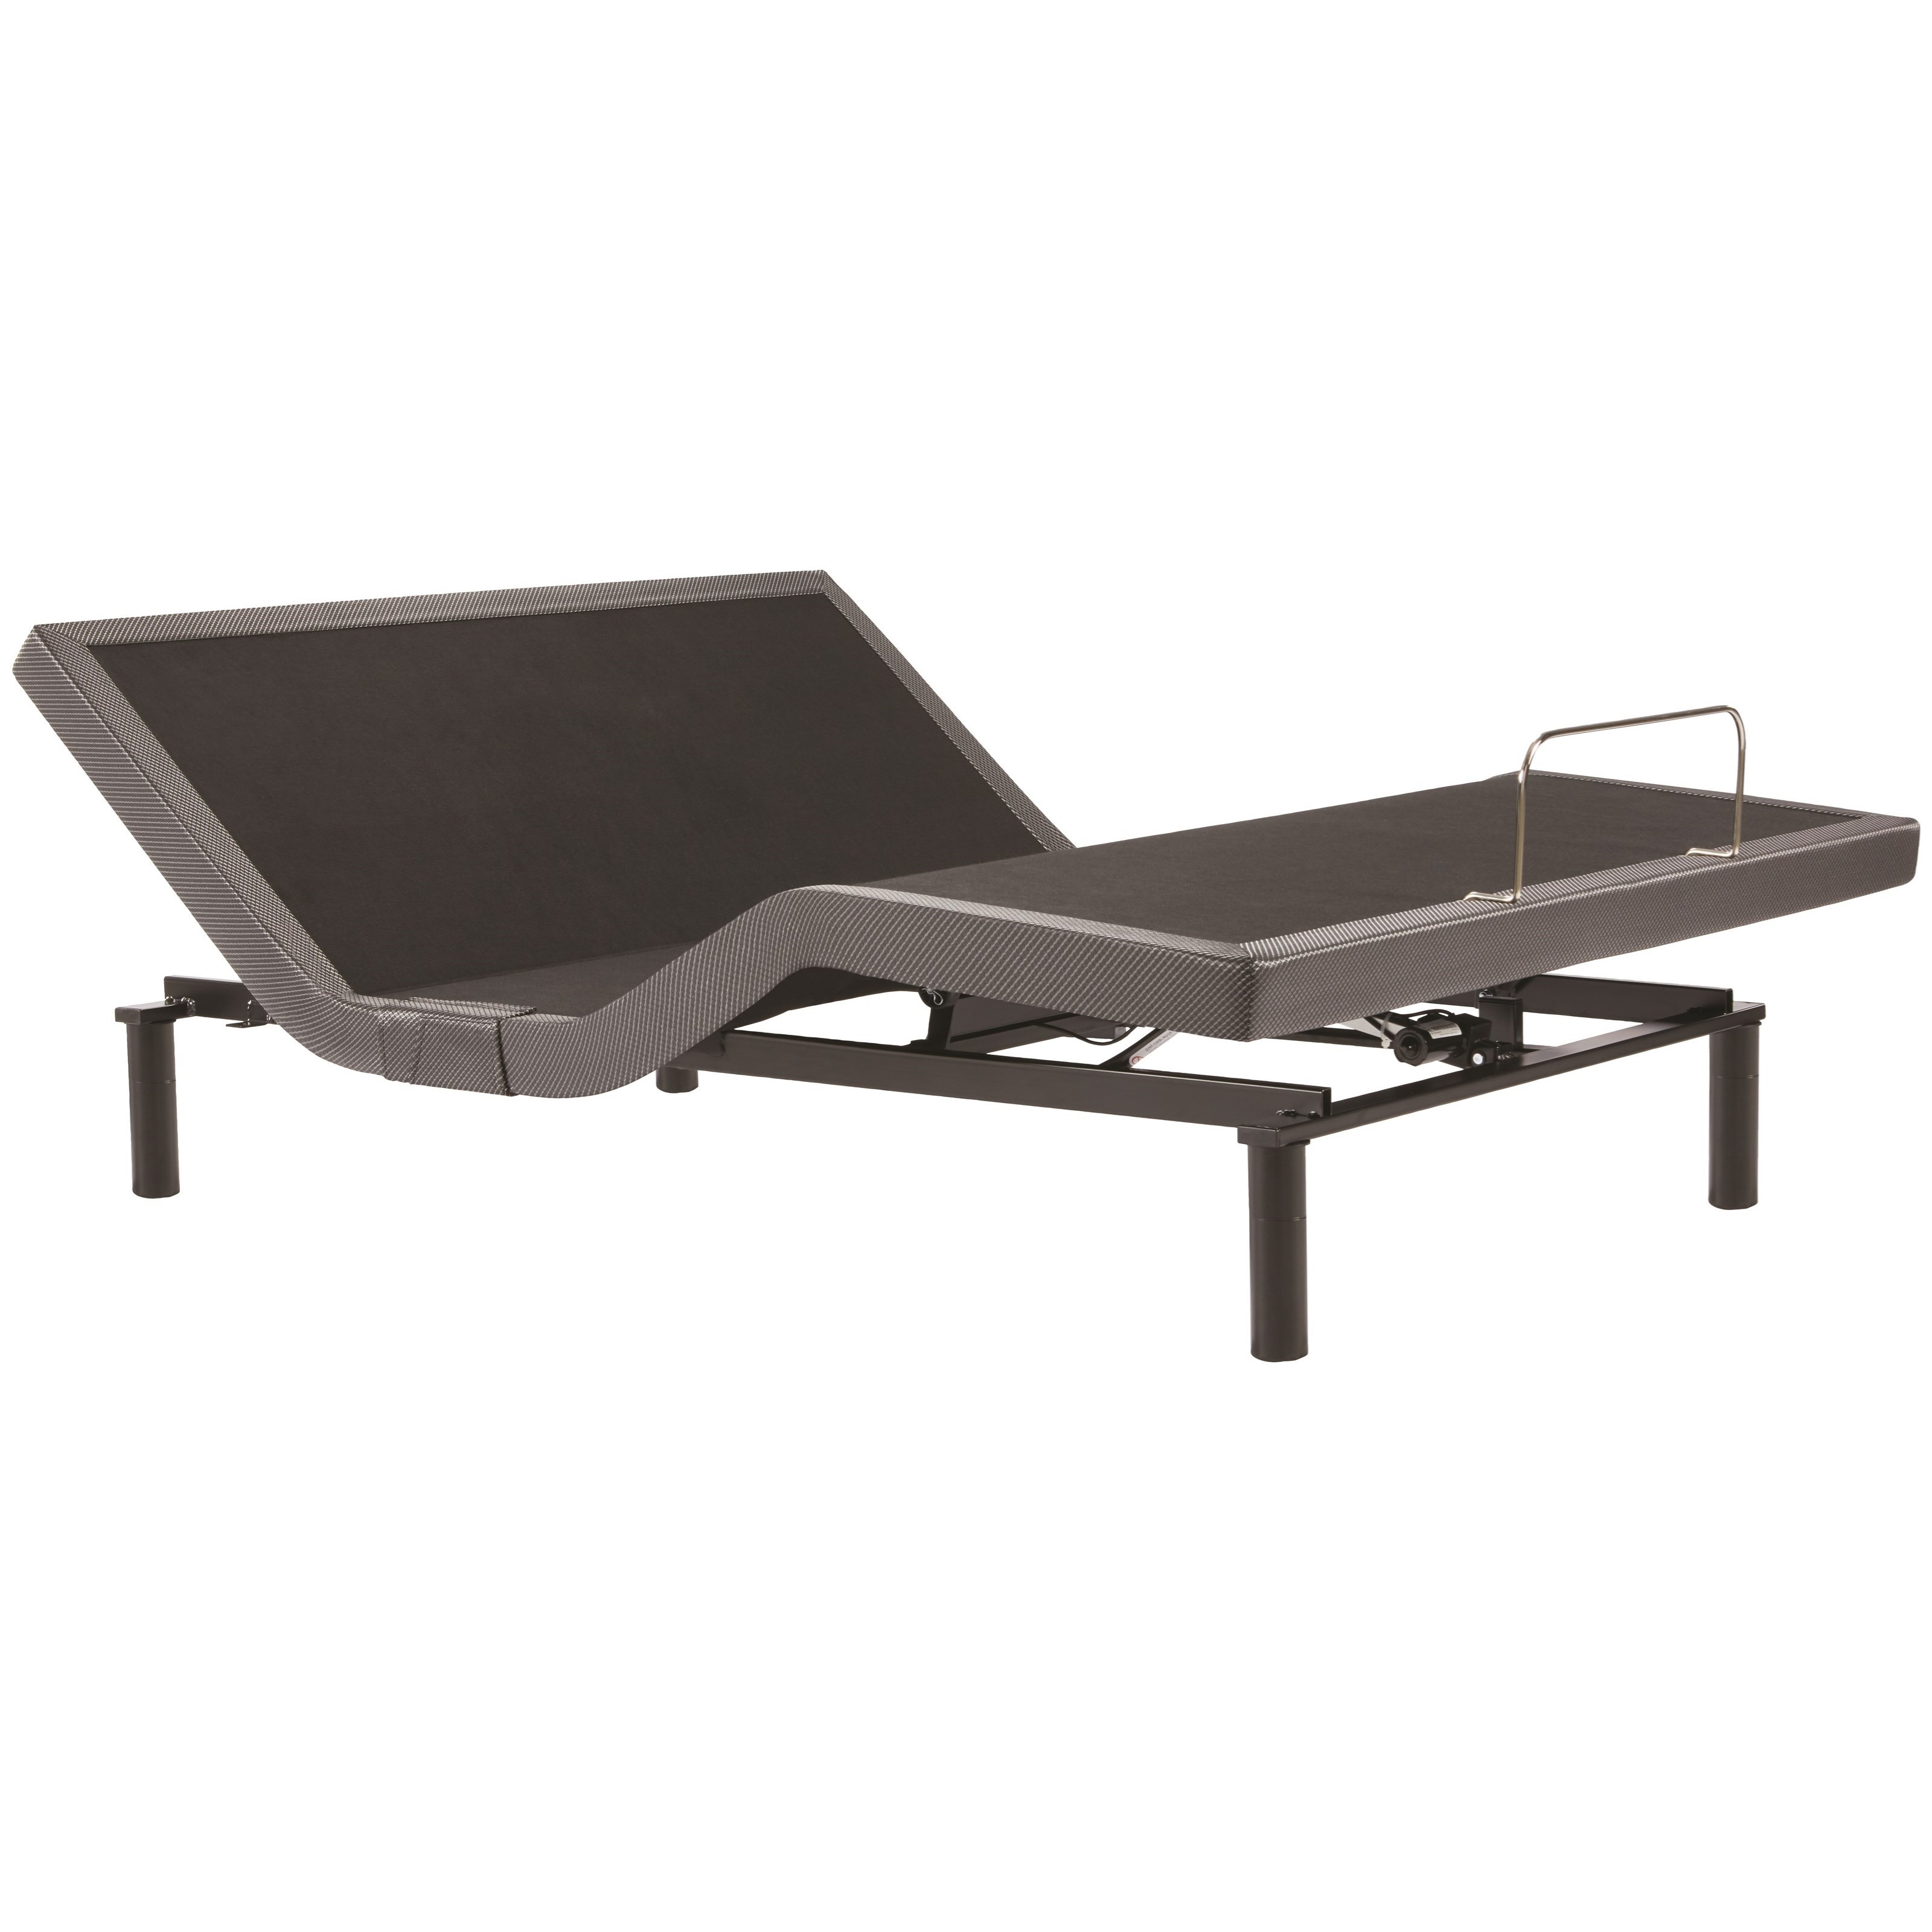 Advanced Motion Base Queen Advanced Motion Adjustable Base by Beautyrest at Becker Furniture